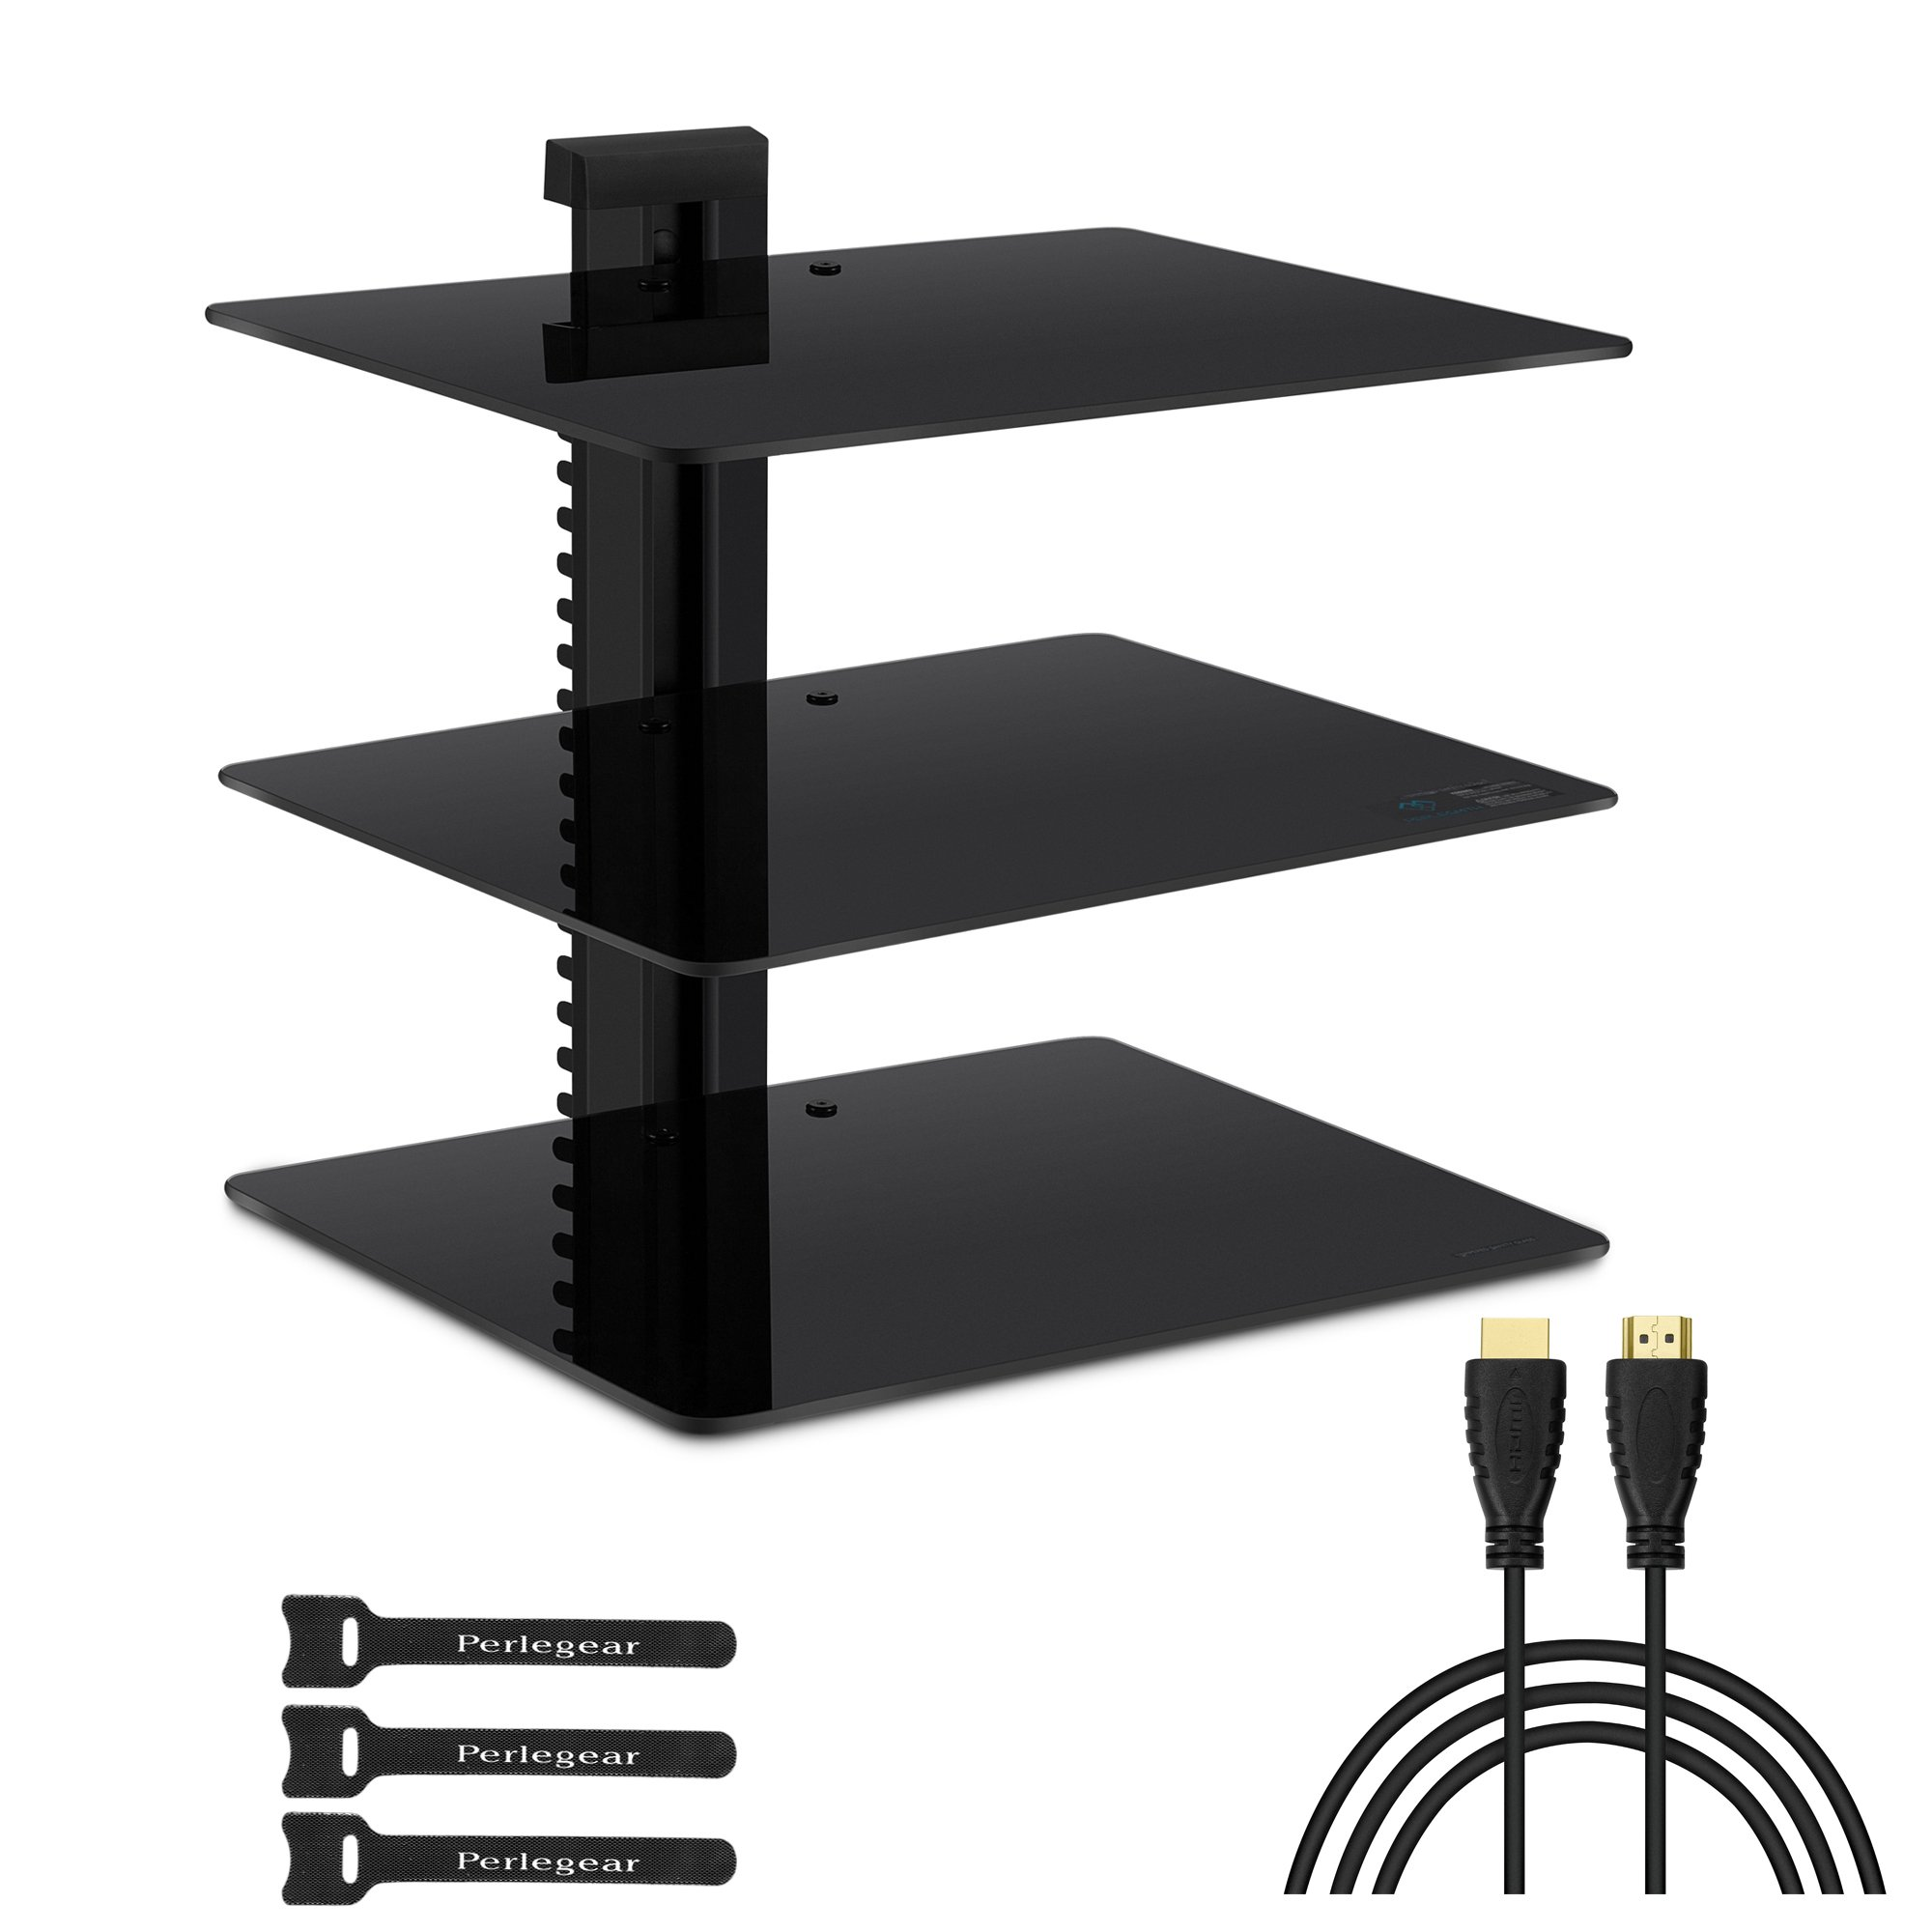 Three Floating DVD DVR Shelf – 3x Wall Mount AV Shelves (15x11 inch) with Strengthened Tempered Glass - for PS3, PS4, Xbox One, Xbox 360, TV box & Cable Box - Bonus 6'' Slim HDMI Cable by Perlegear